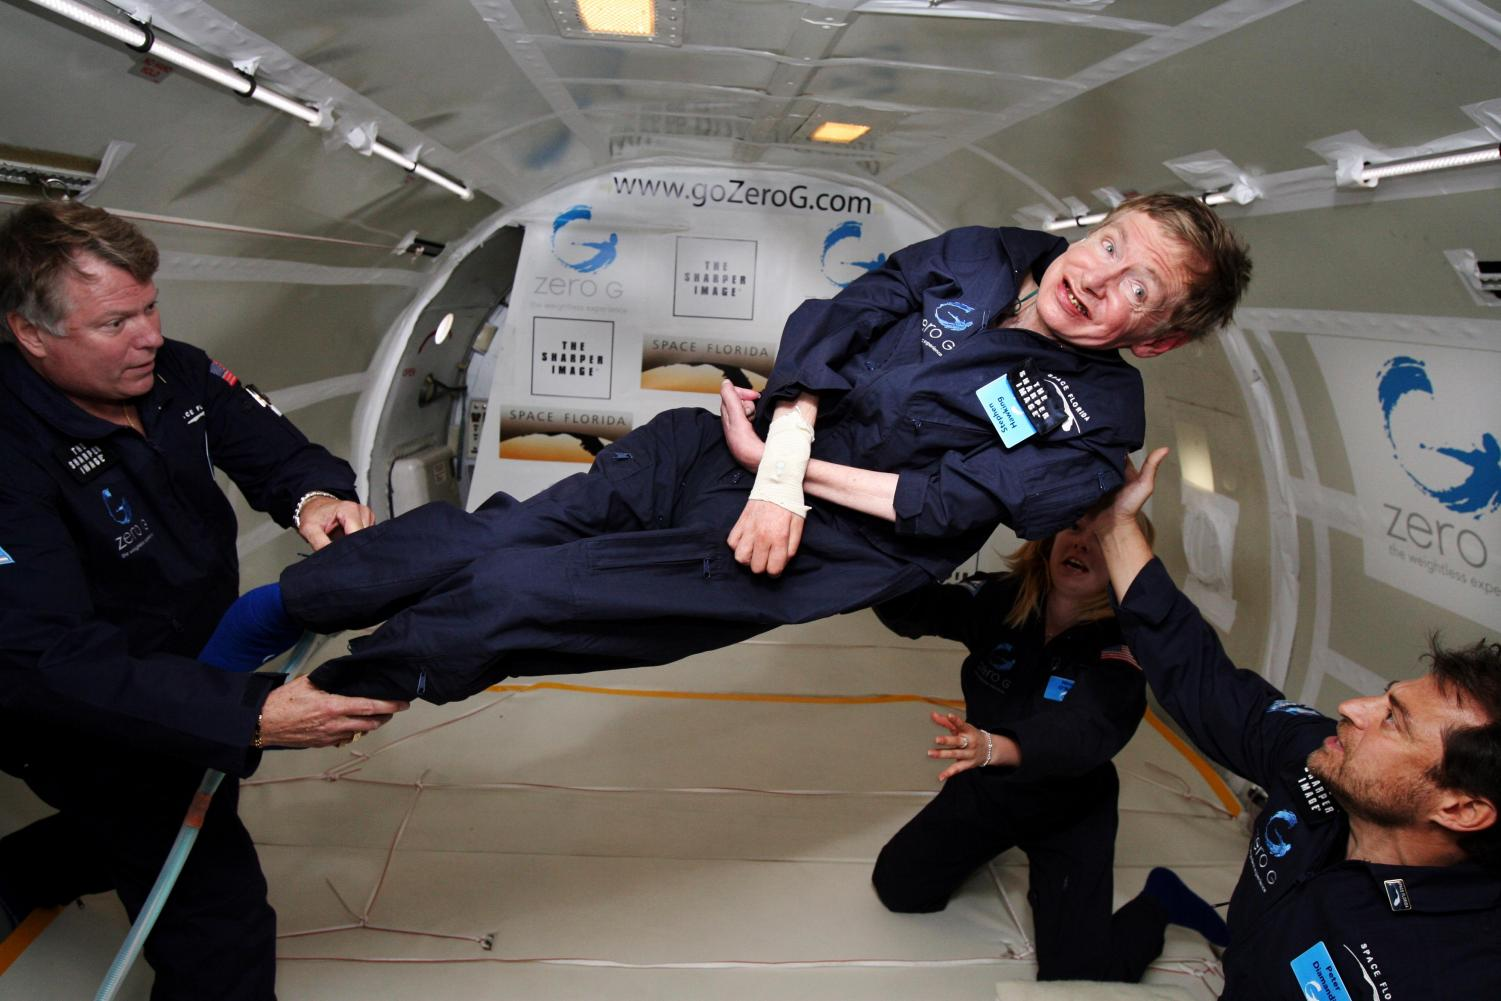 Physicist Stephen Hawking enjoys zero gravity during a flight aboard a modified Boeing 727 aircraft.